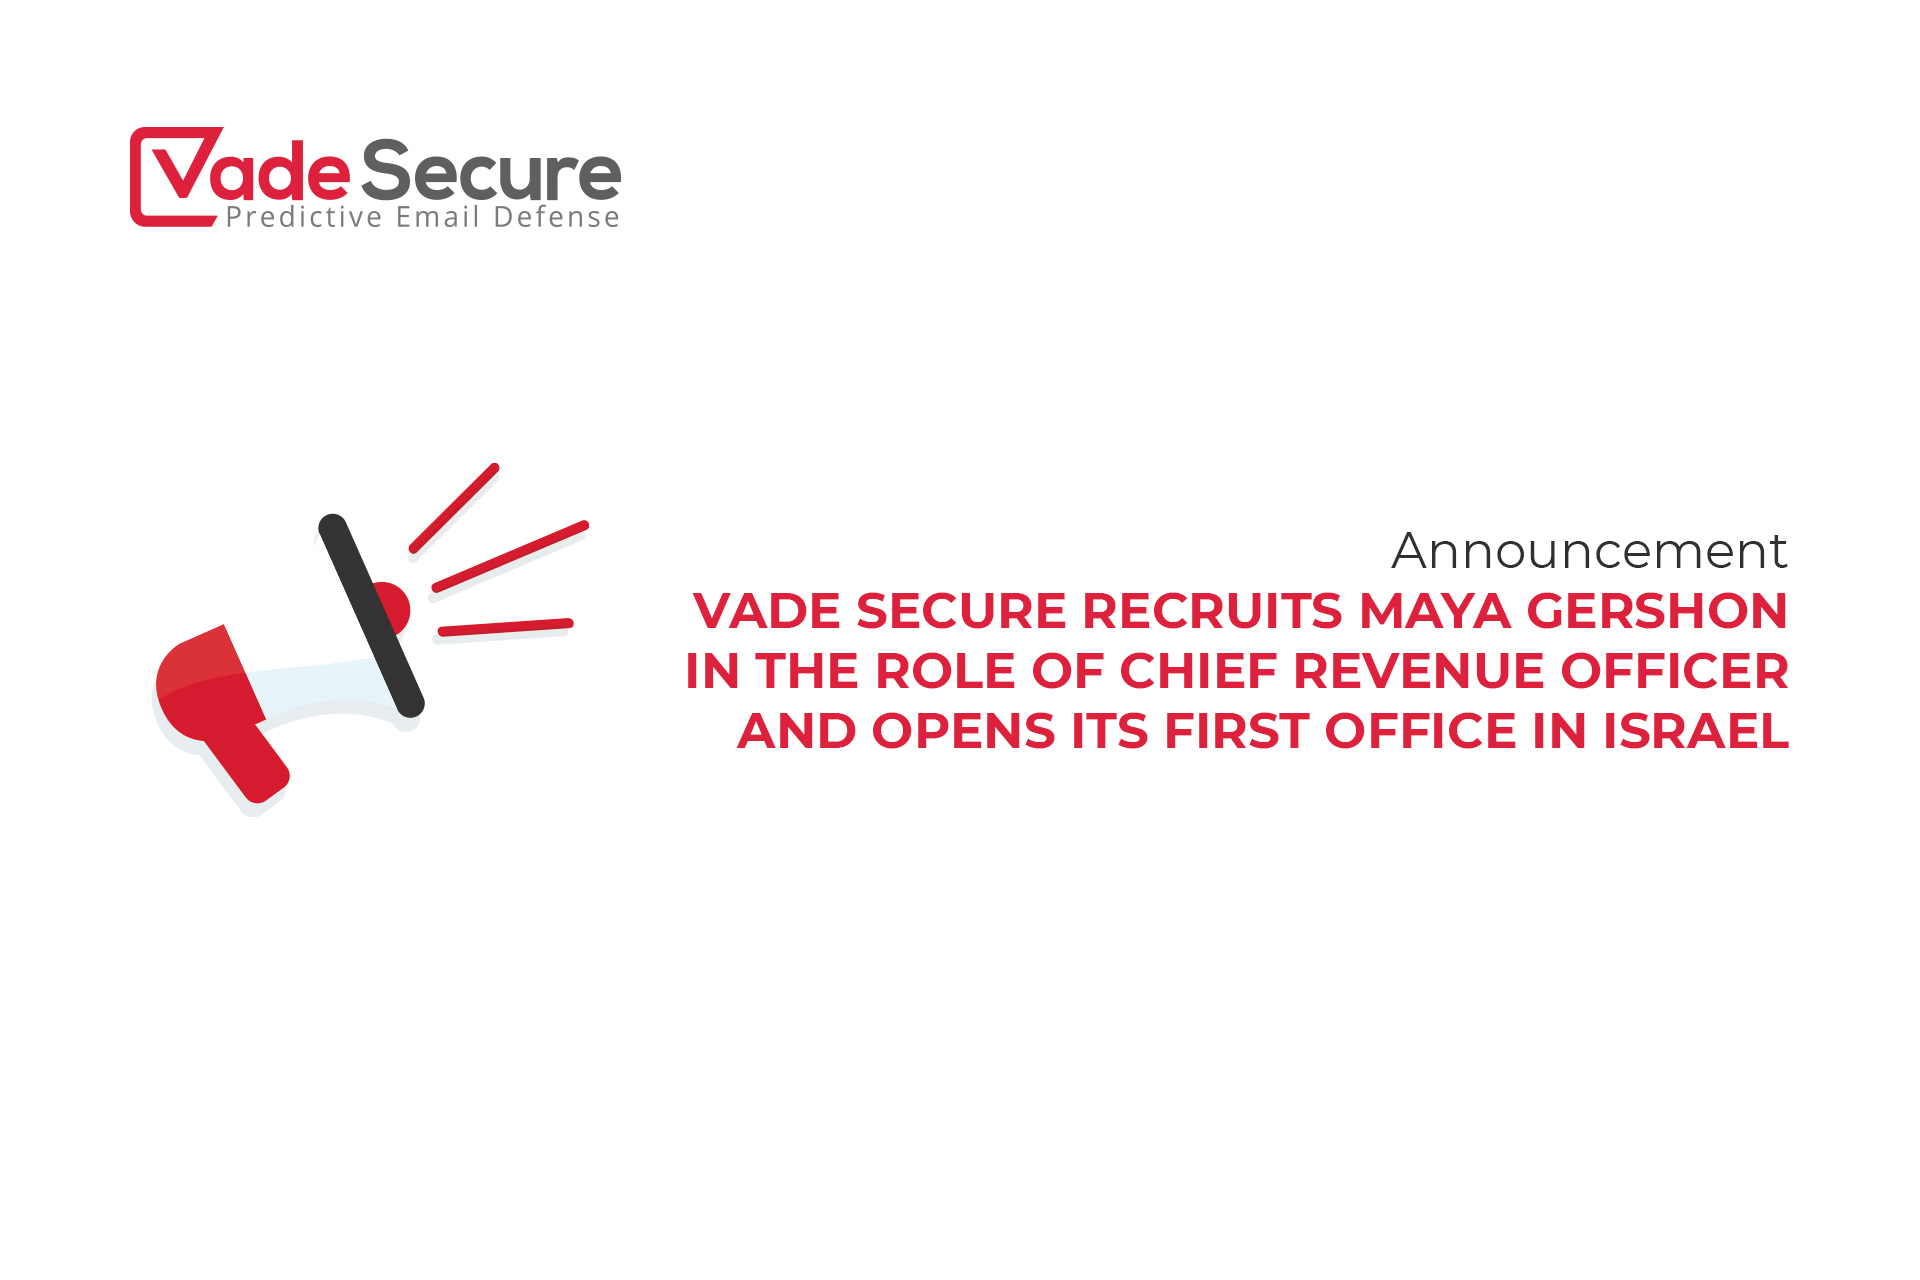 Vade Secure recruits Maya Gershon in the role of Chief Revenue Officer and opens its first office in Israel